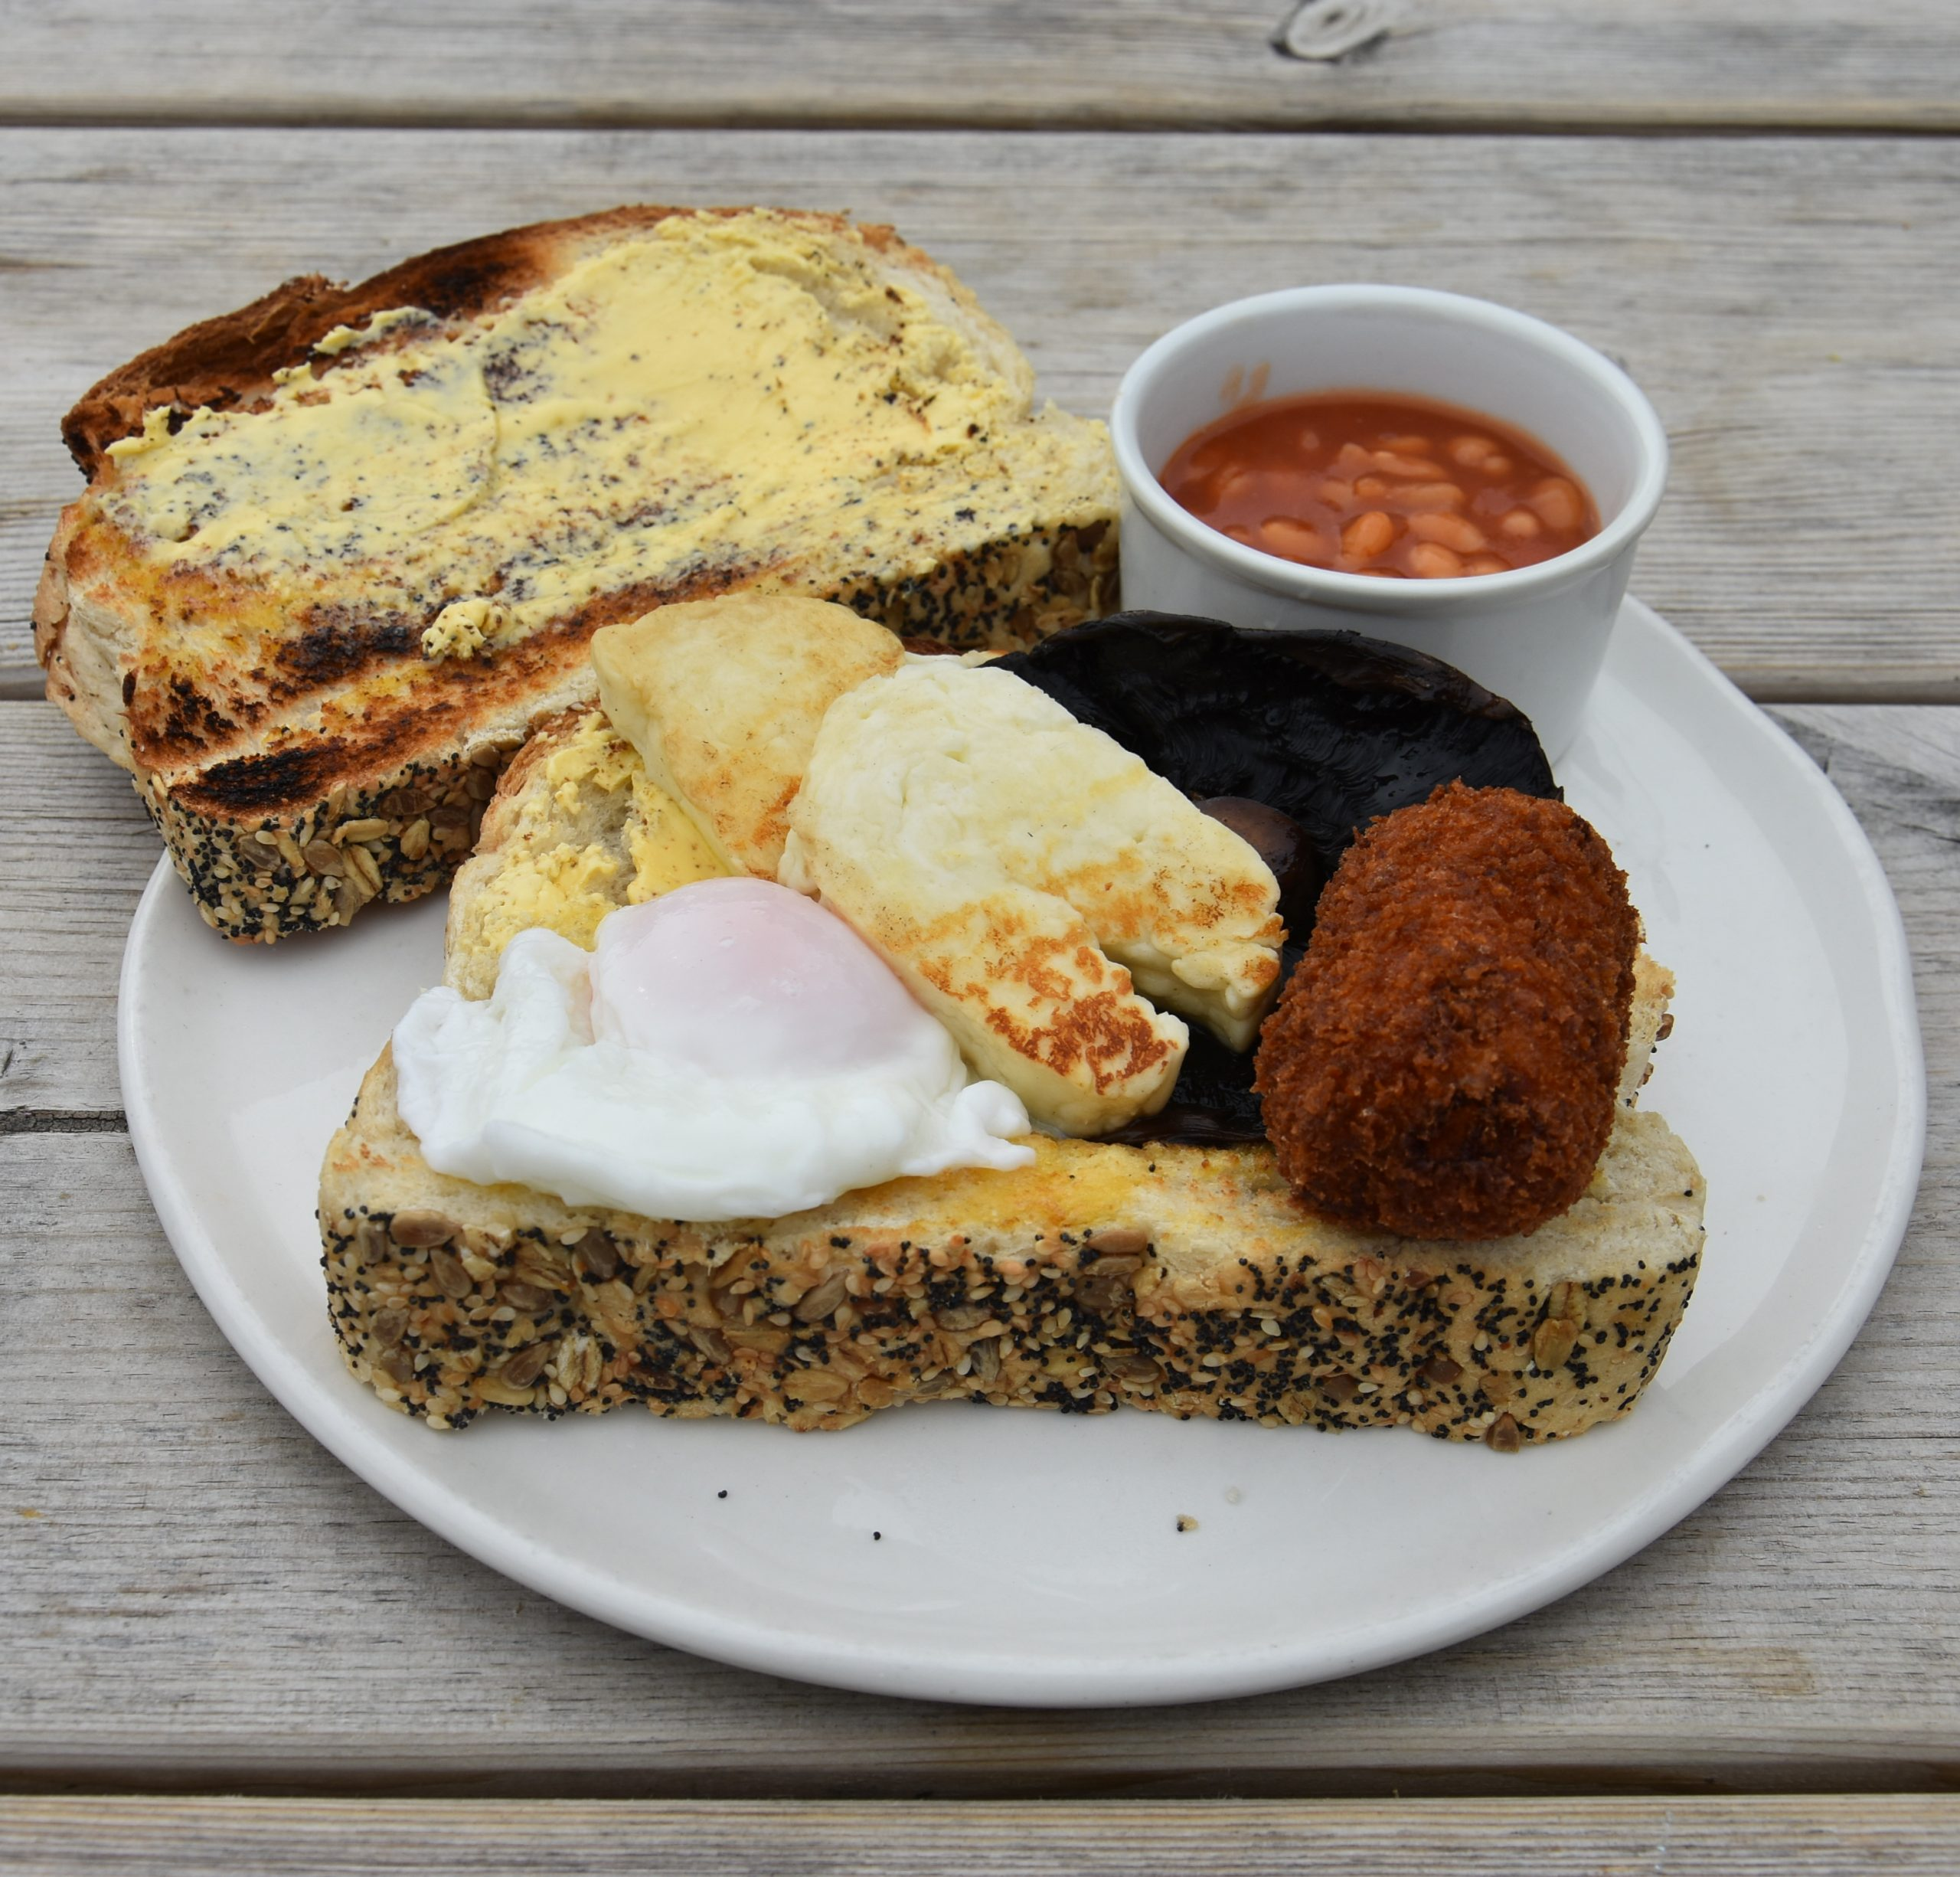 My Vegetarian Stacked breakfast at the Riverbanc in Llangollen: egg, halloumi, mushrooms, croquette, beans and seeded toast (plus an extra slice).